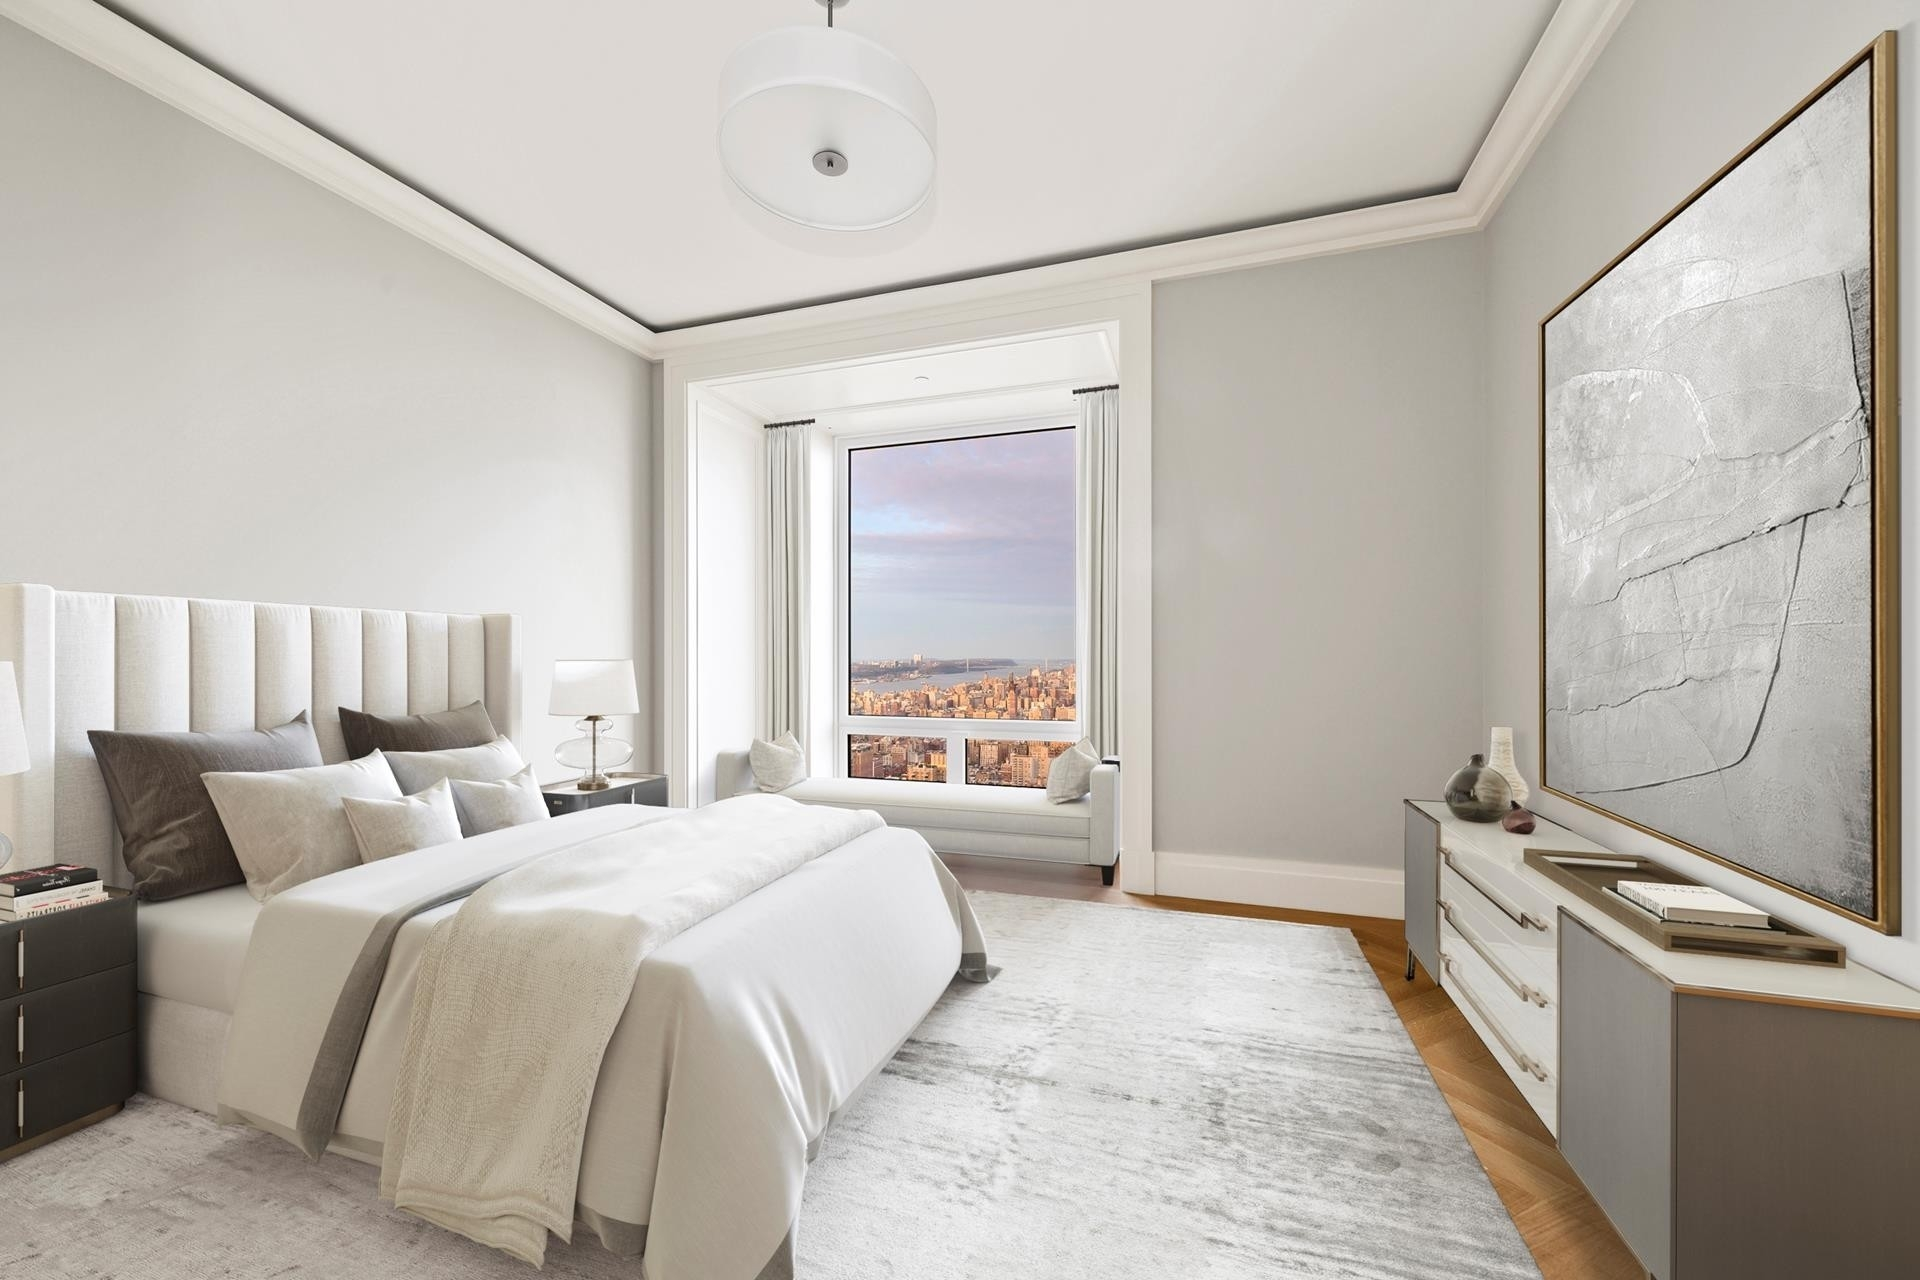 15. Condominiums for Sale at 220 CPS, 220 CENTRAL PARK S, 54/55A Central Park South, New York, NY 10019